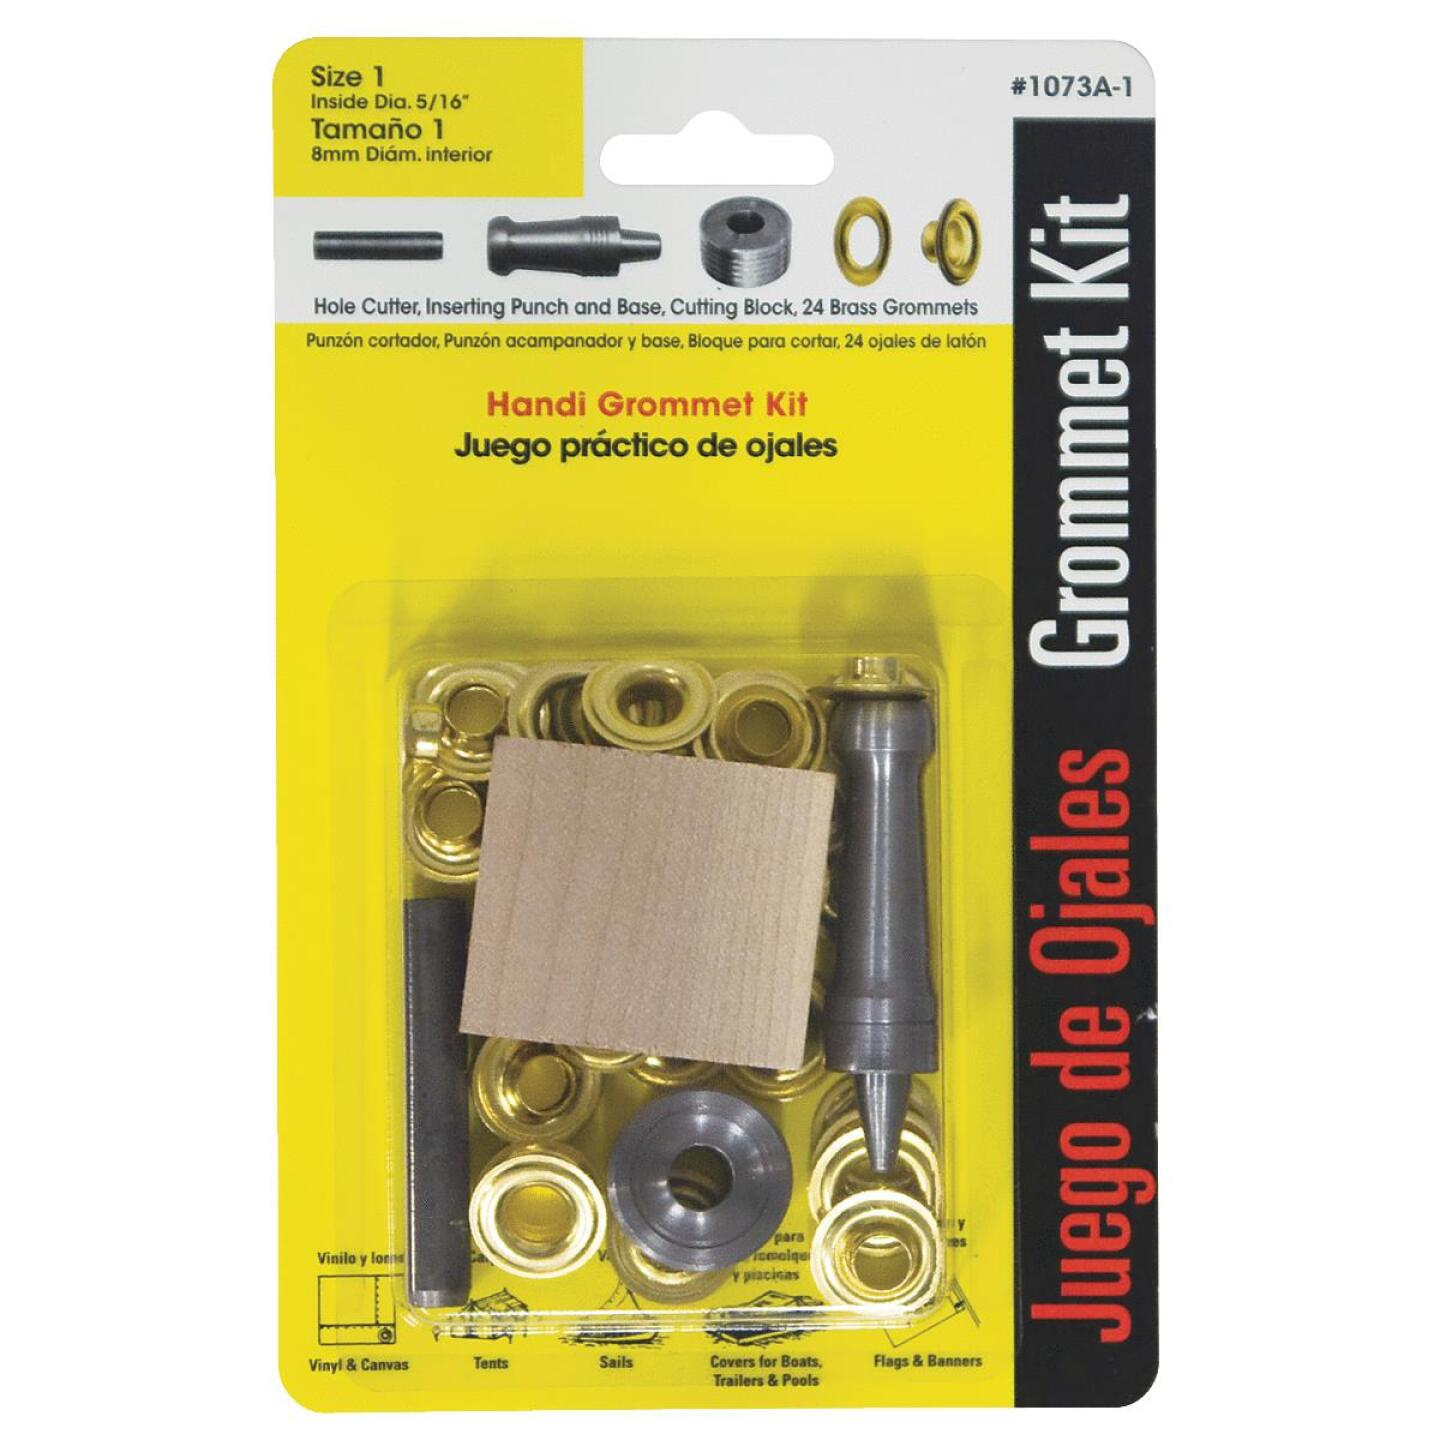 Lord & Hodge 5/16 In. Brass Grommet Kit Image 1